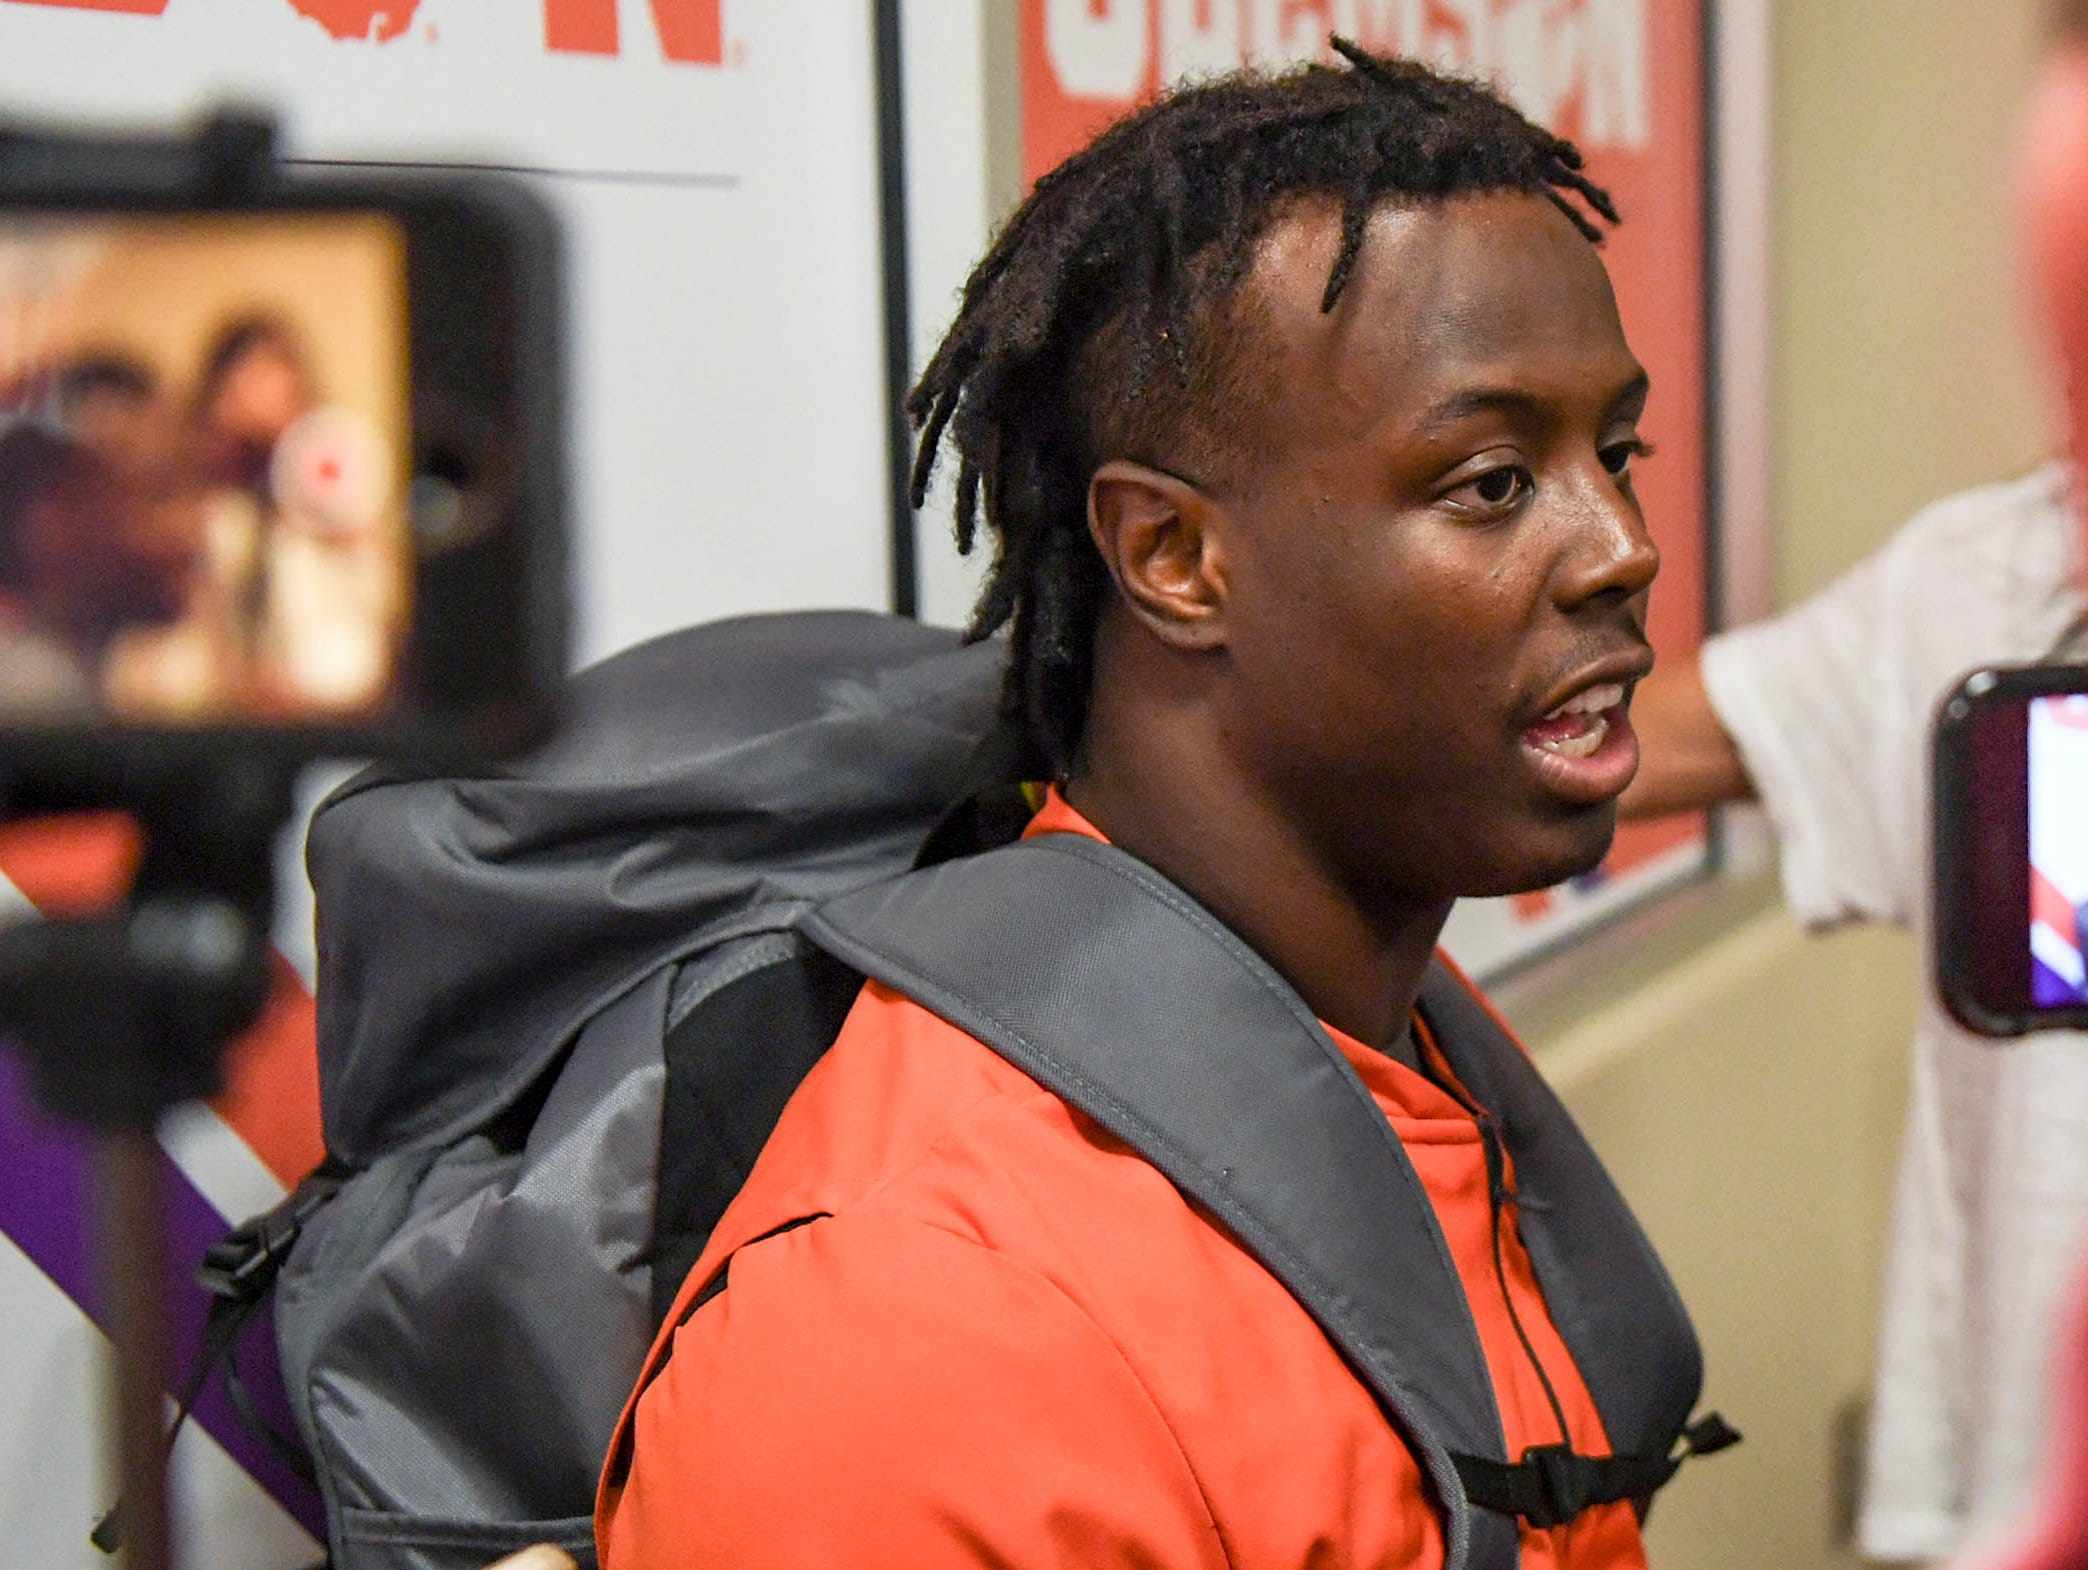 Clemson running back Travis Etienne talks with media after the game with NC State in Memorial Stadium on Saturday, October 20, 2018.